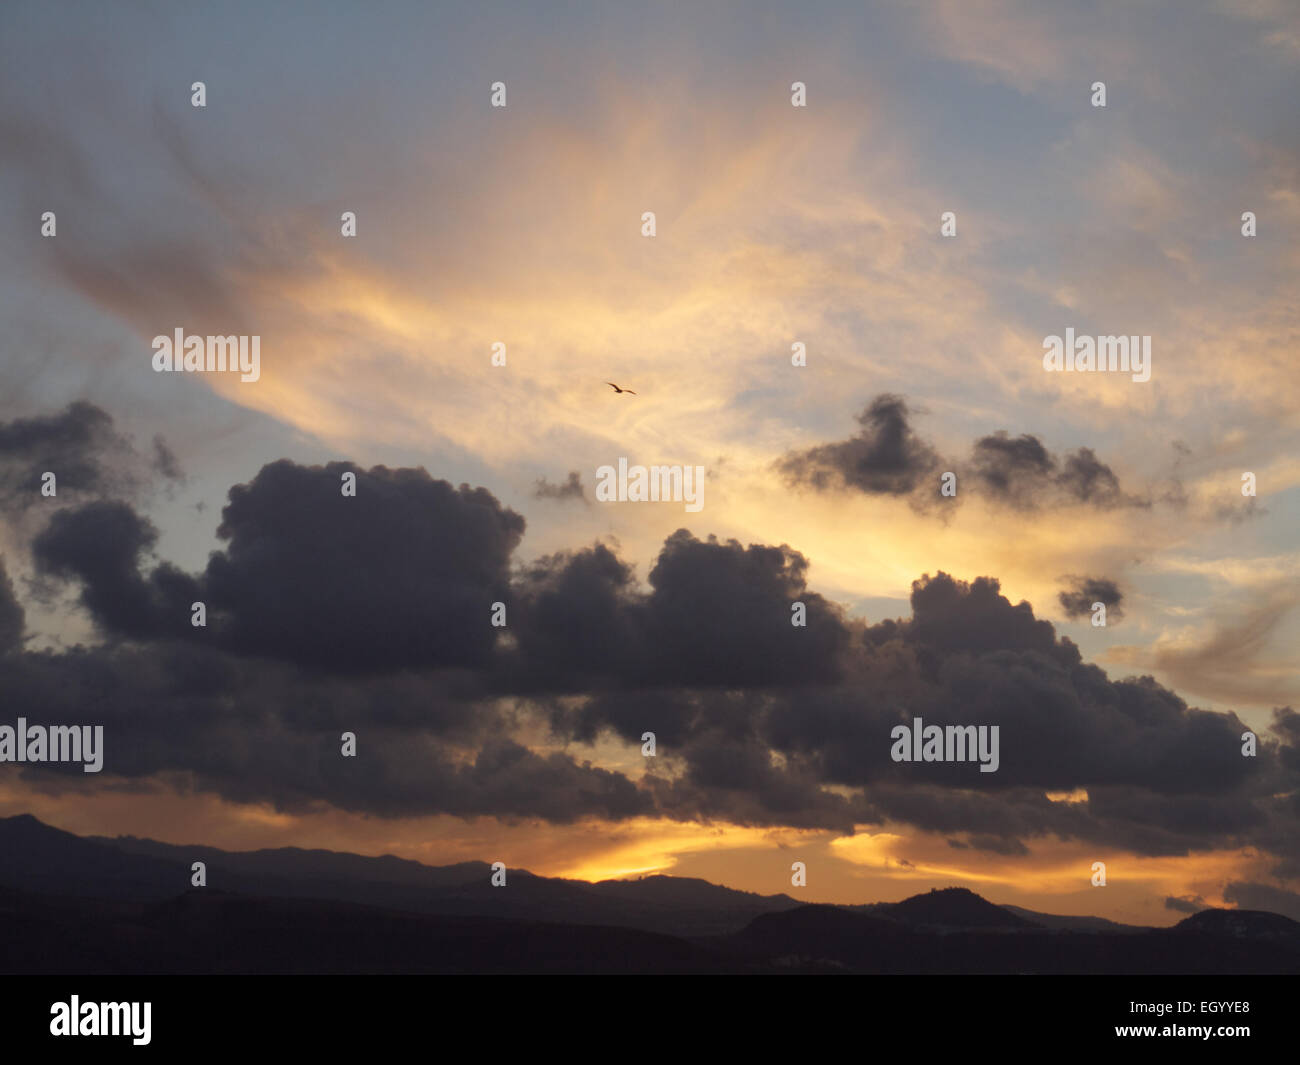 Sunset Las Palmas Canary Islands - Stock Image